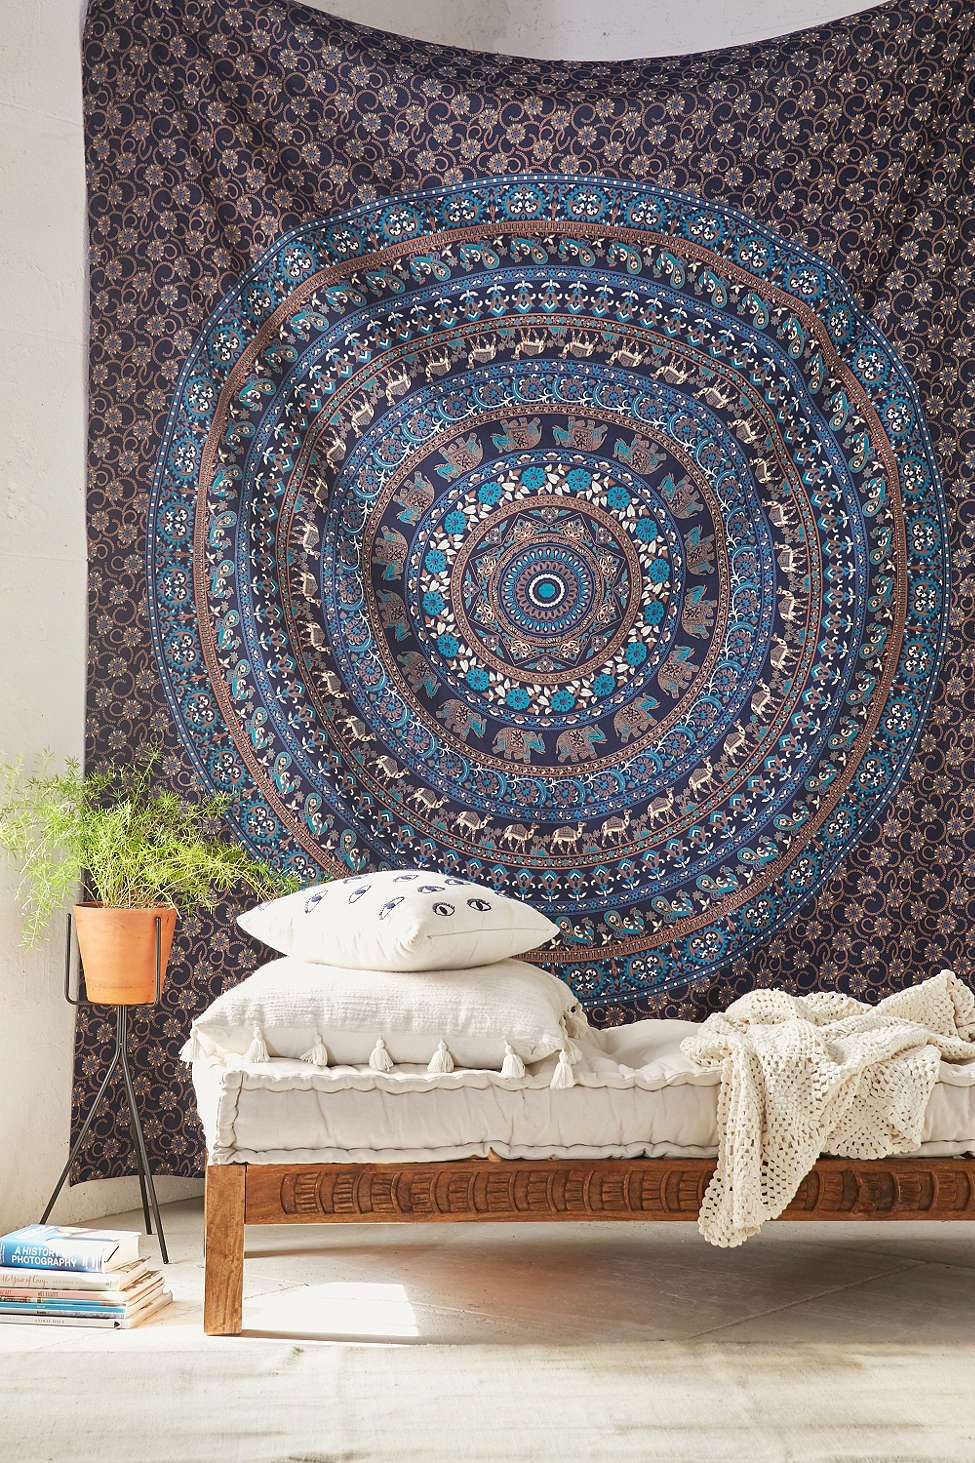 space your elephant cotton wall asian com deja vu floral to purple mandala shop medallion make tapestry multi on royalfurnish pin hanging more charming